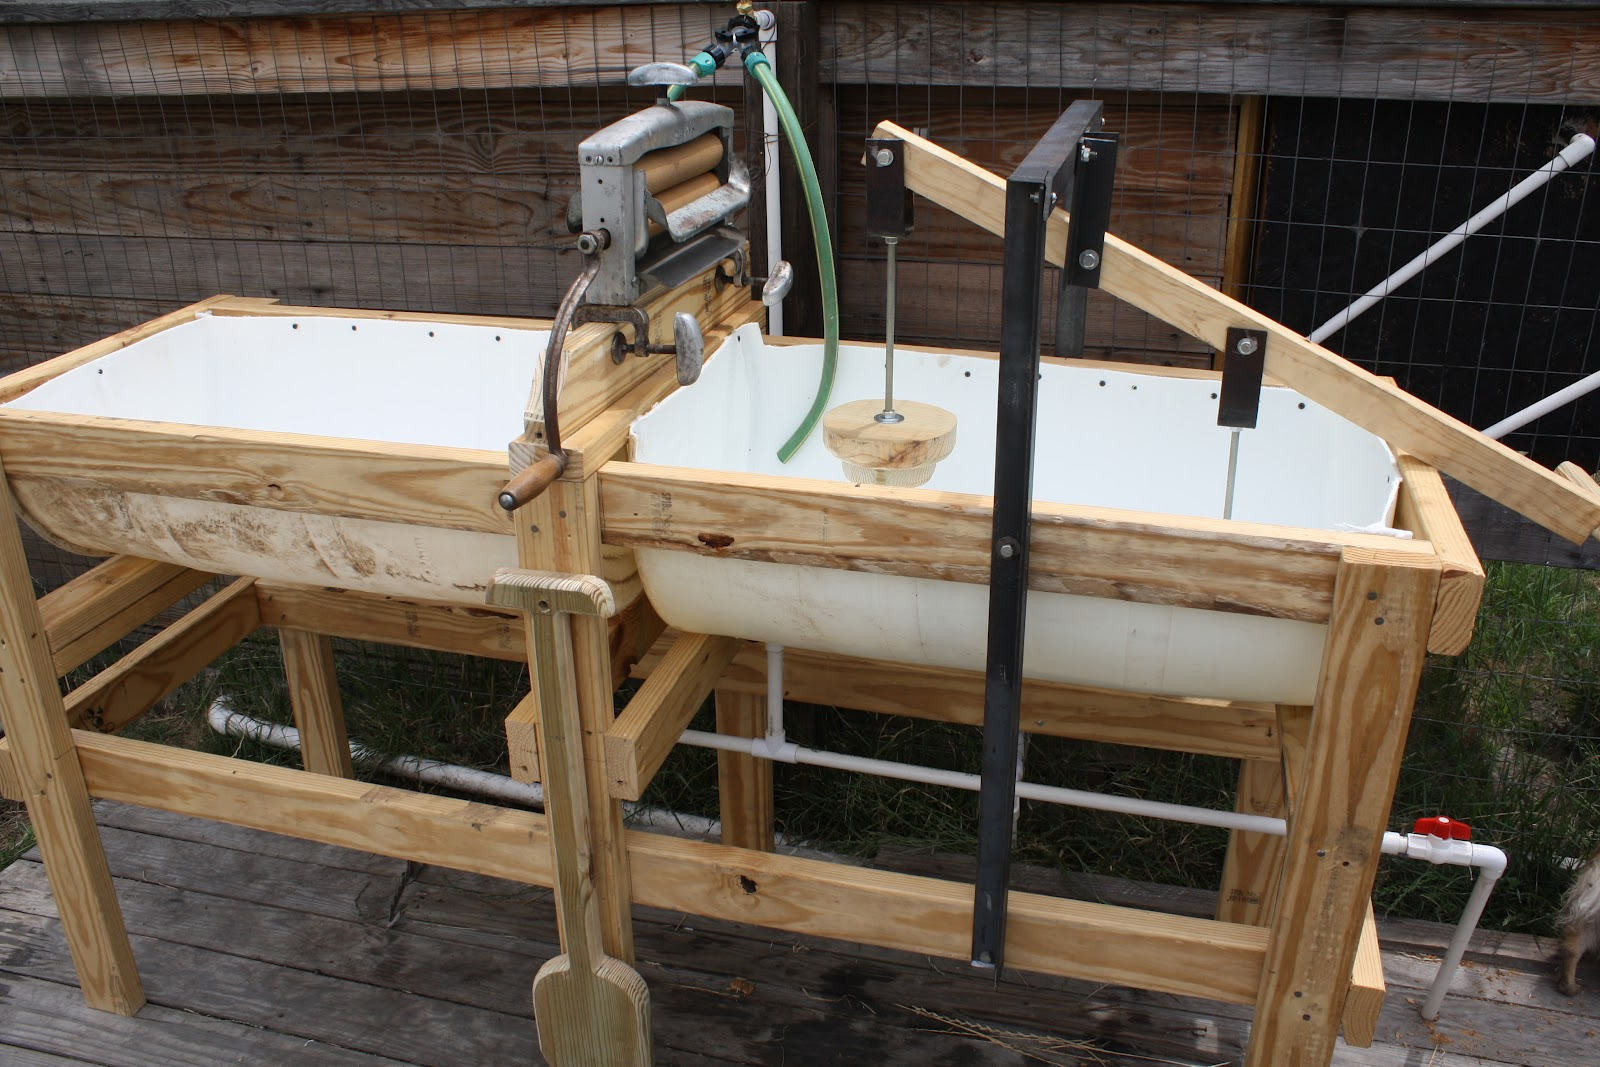 Redneck Washing Machine | Construction and DIY projects ...